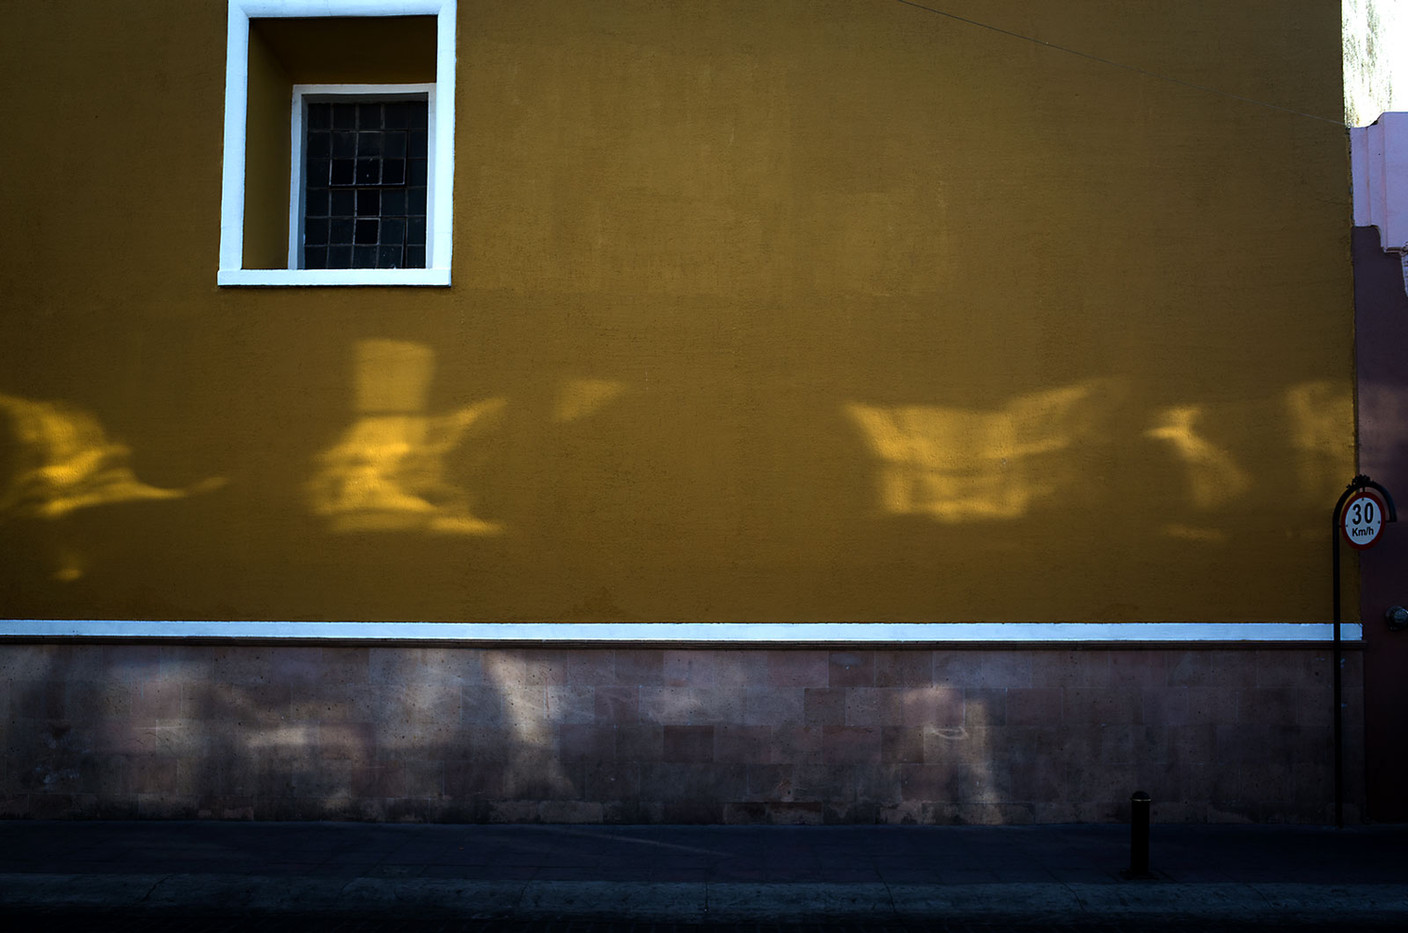 Reflected sunlight patterns decorate a wall in León.